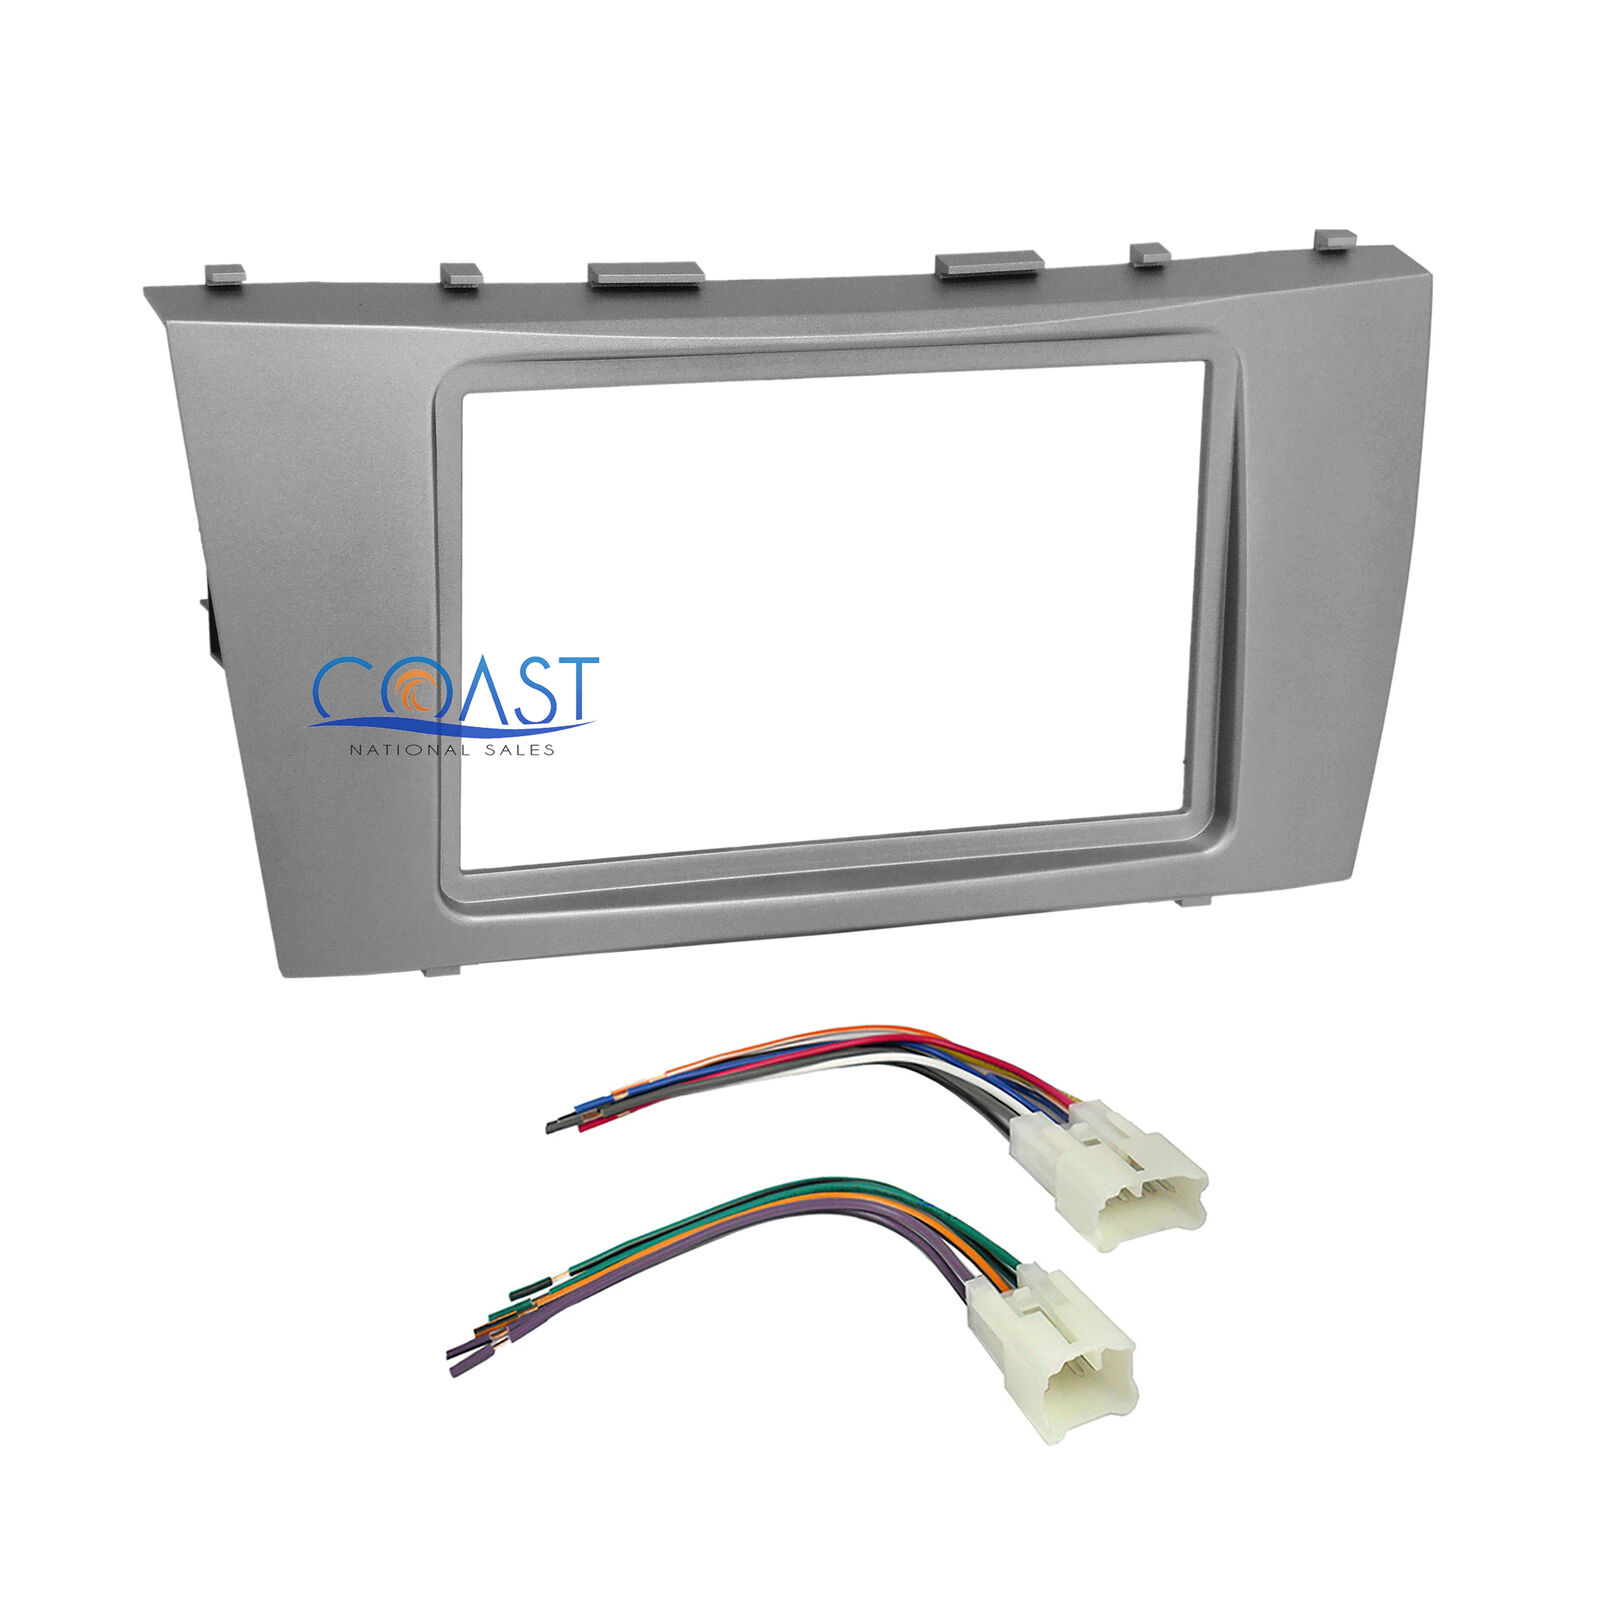 Metra Car Radio Stereo Double Din Dash Kit Harness For 2007 2011 Toyota Highlander Wiring Camry 1 Of 3free Shipping See More